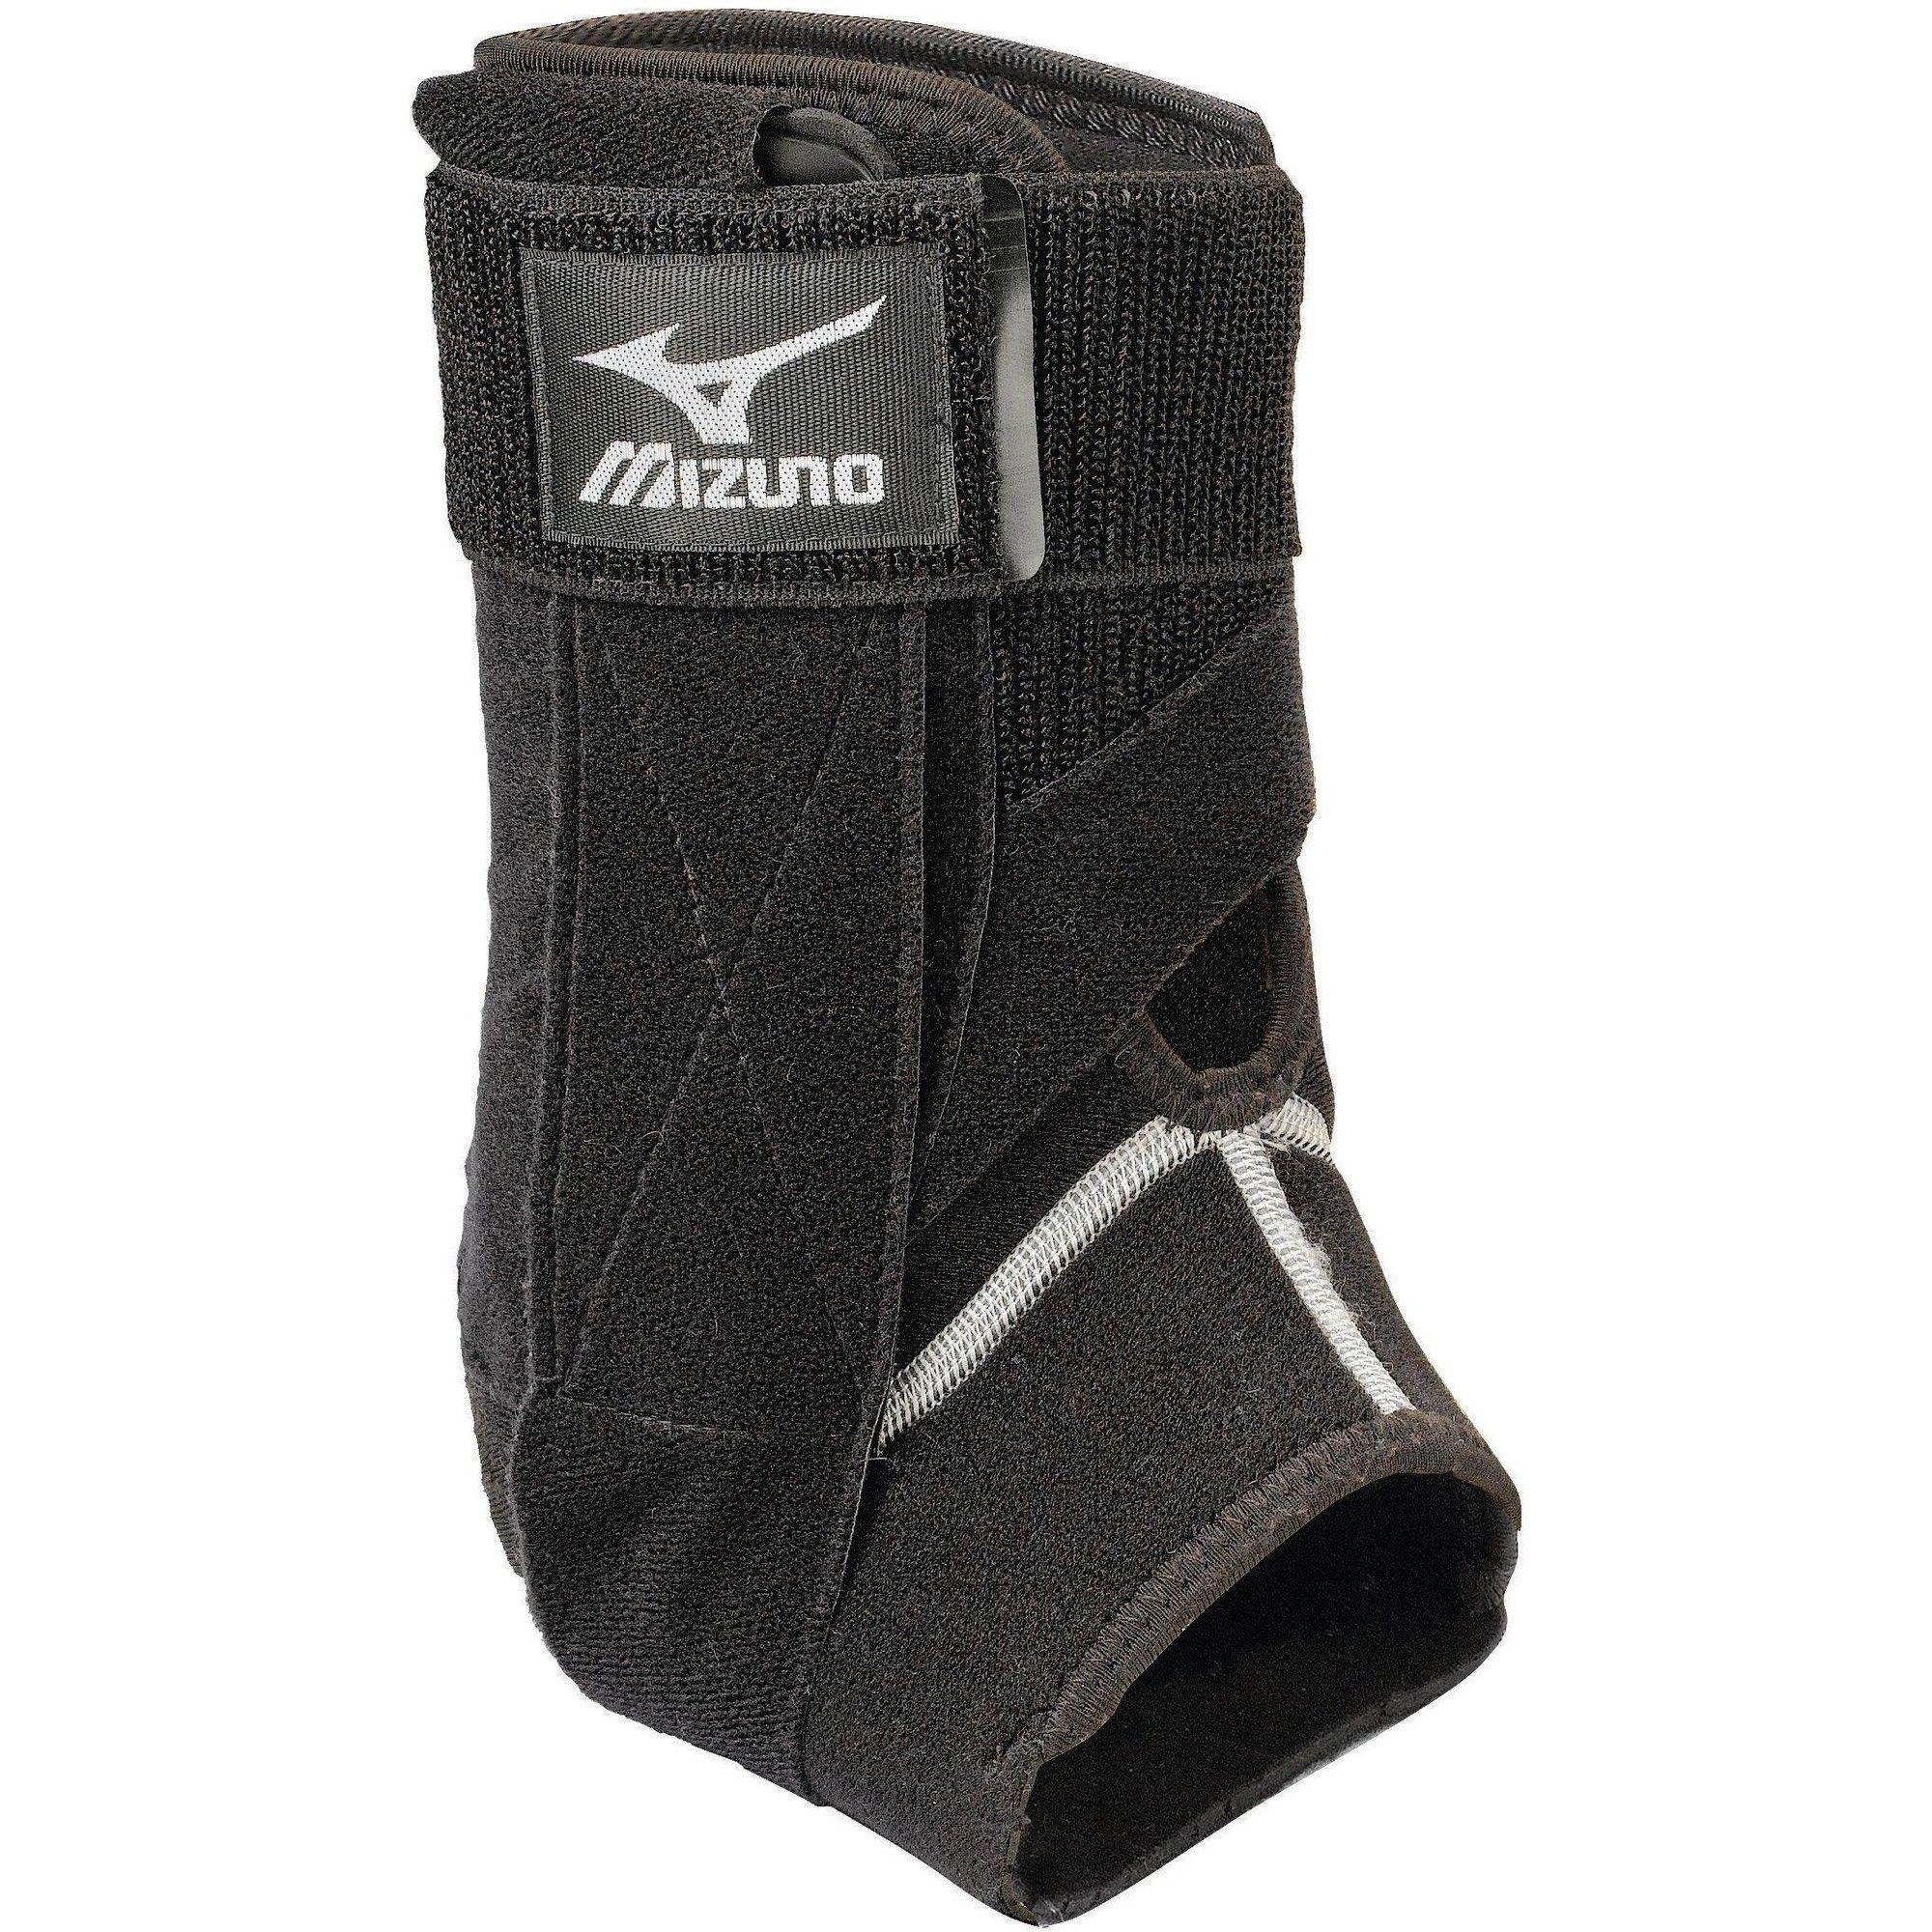 Mizuno Dxs2 Right Ankle Brace Unisex Size Extra Small In Color Black 9090 Volleyball Ankle Braces Ankle Braces Volleyball Accessories